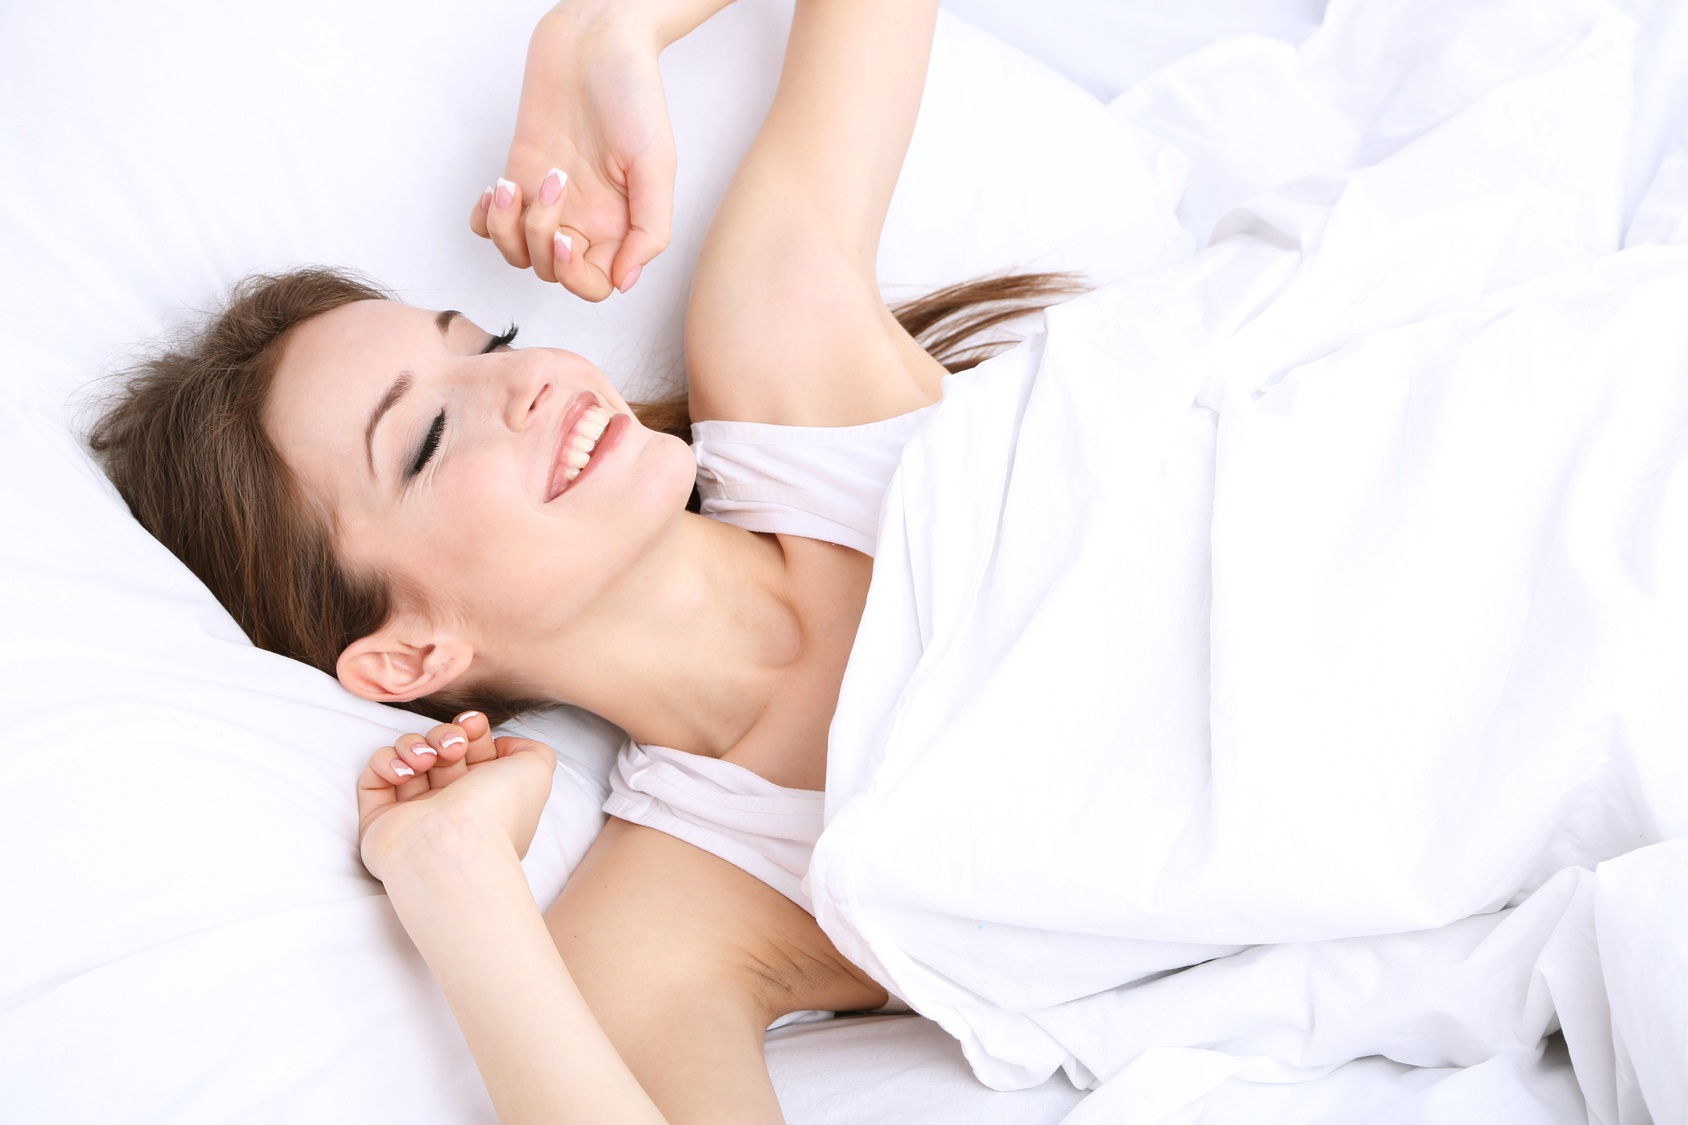 Young beautiful woman sleeping in bed close-up